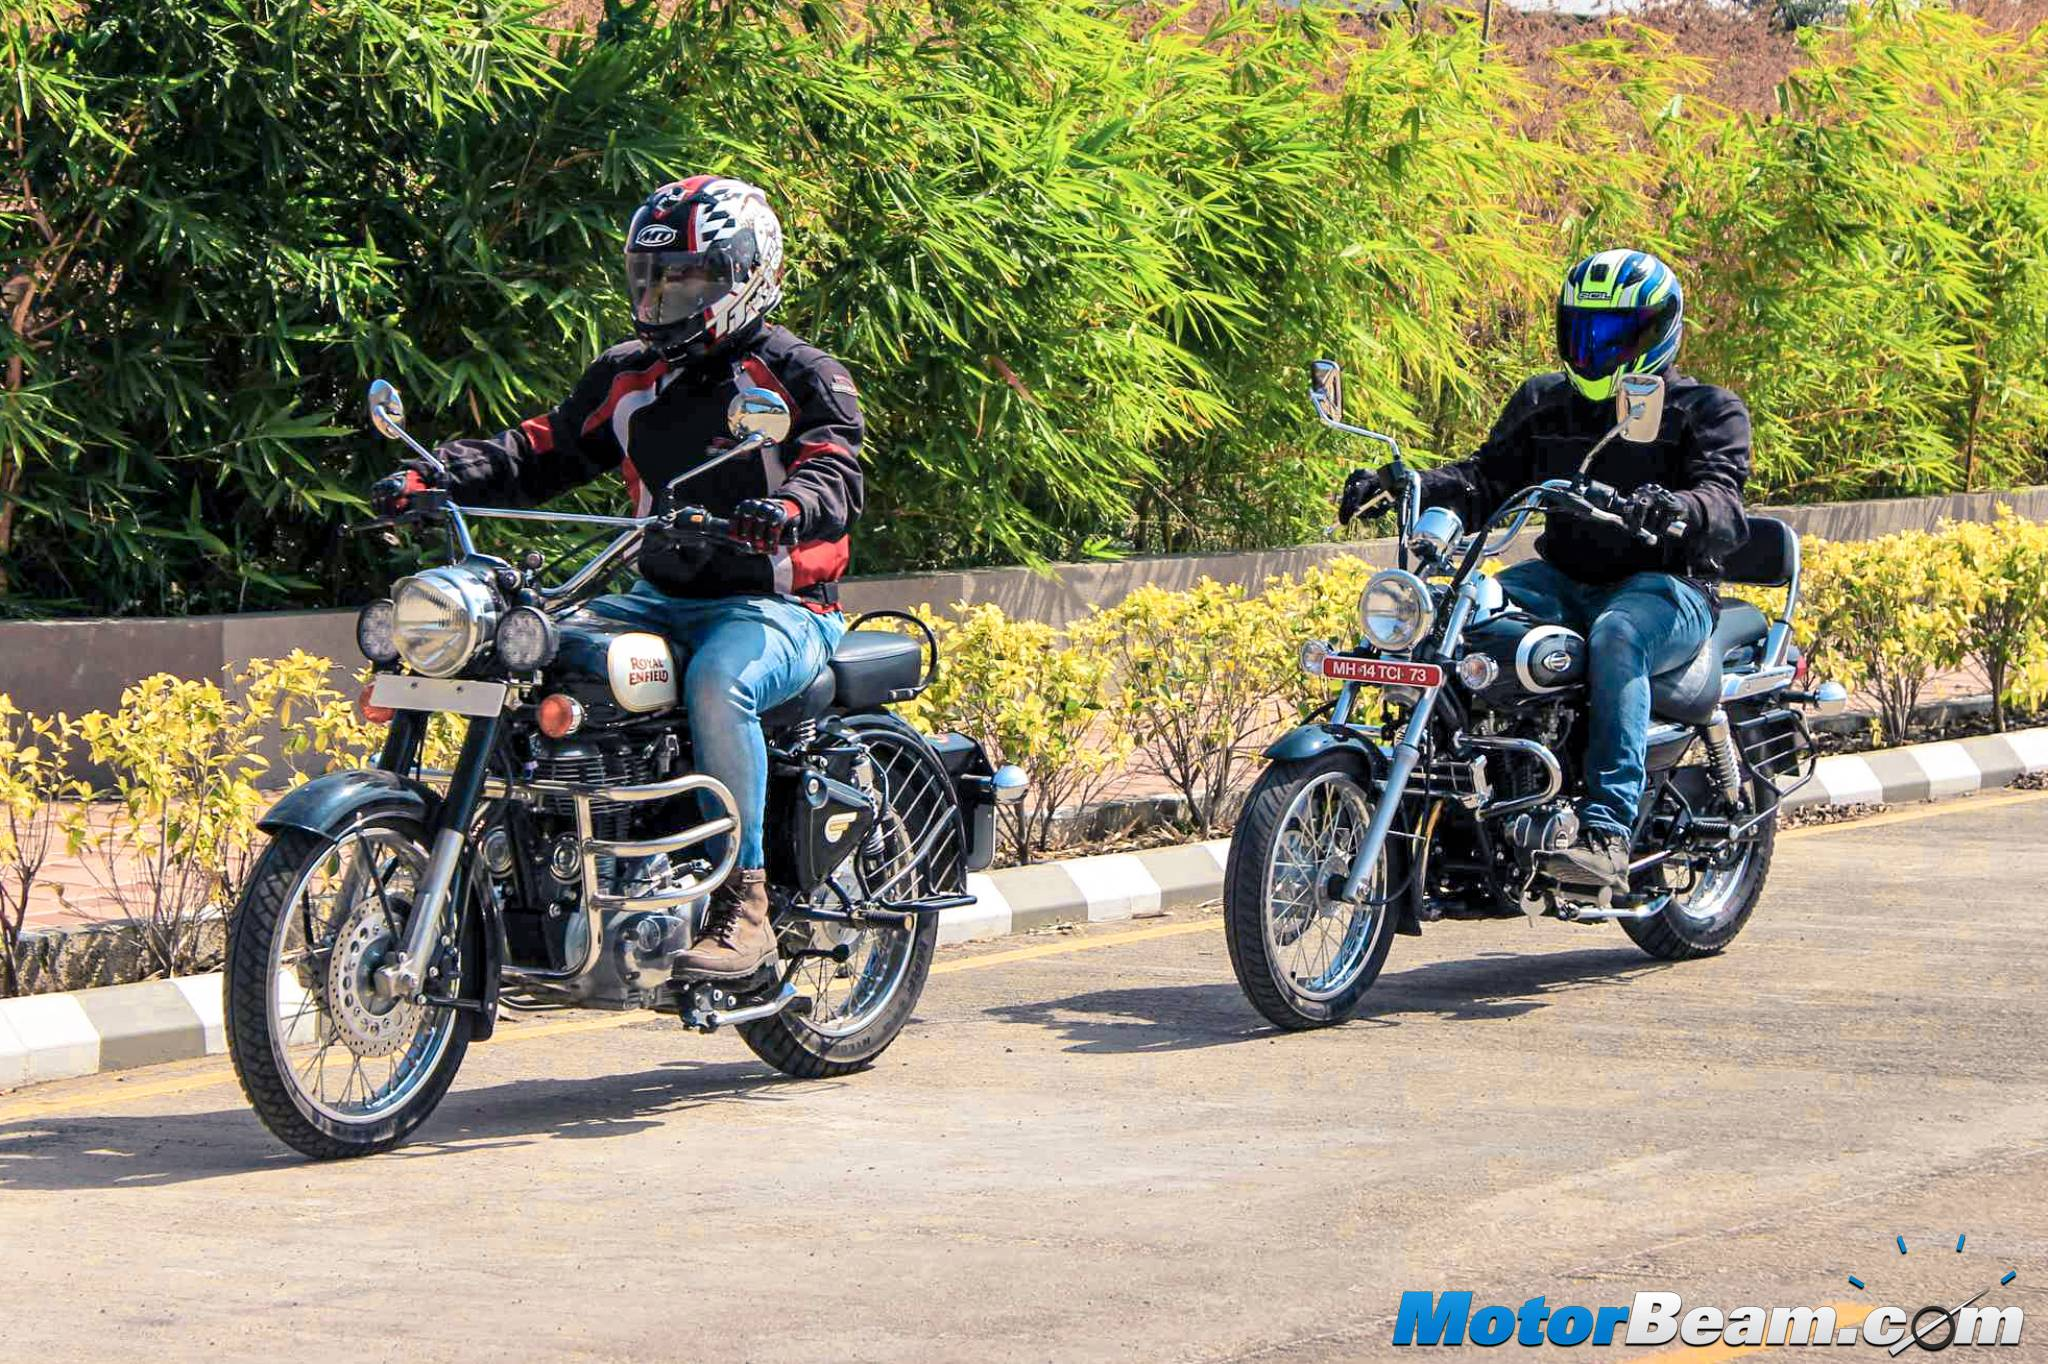 RE Classic 350 vs Bajaj Avenger 220